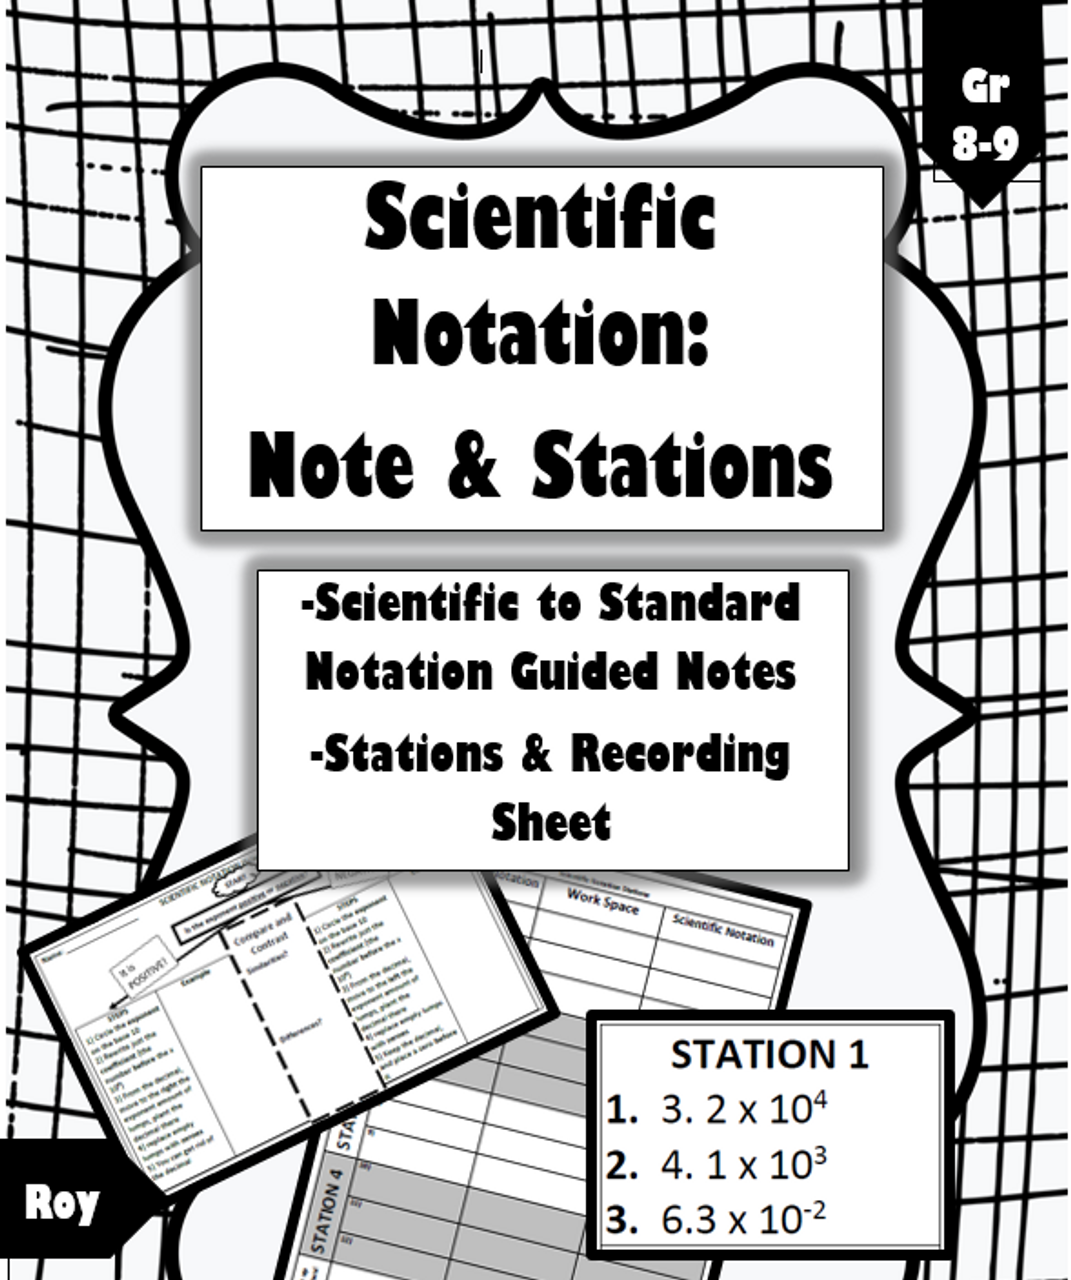 Scientific Notation Flowchart Cheat Sheet and Stations